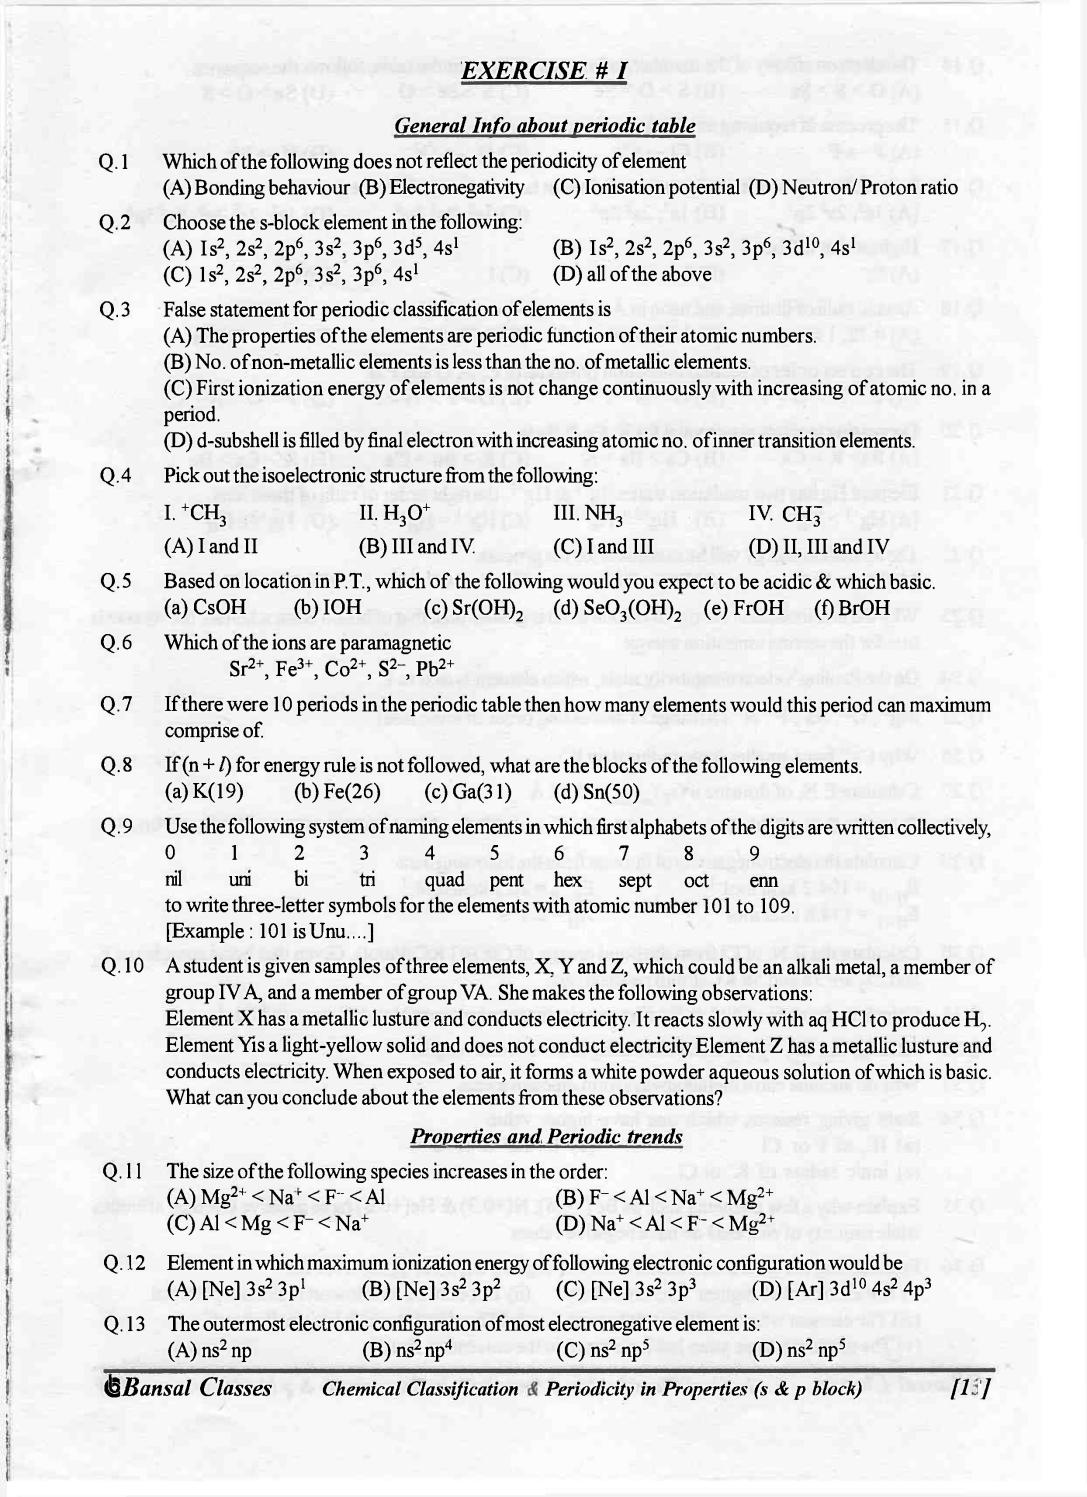 Bansal classes chemistry study material for iit jee by sdharmaraj bansal classes chemistry study material for iit jee by sdharmaraj issuu gamestrikefo Image collections